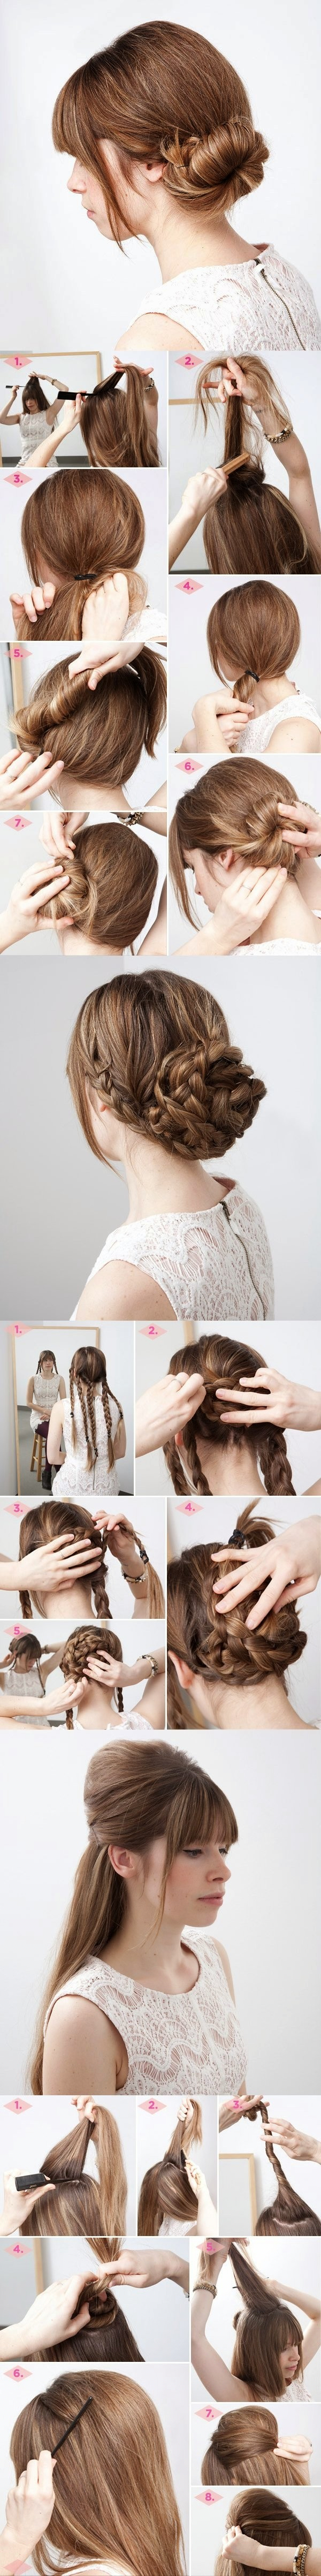 Super Easy Hairstyle Tutorials 2014 img2c9ad7a9724698342